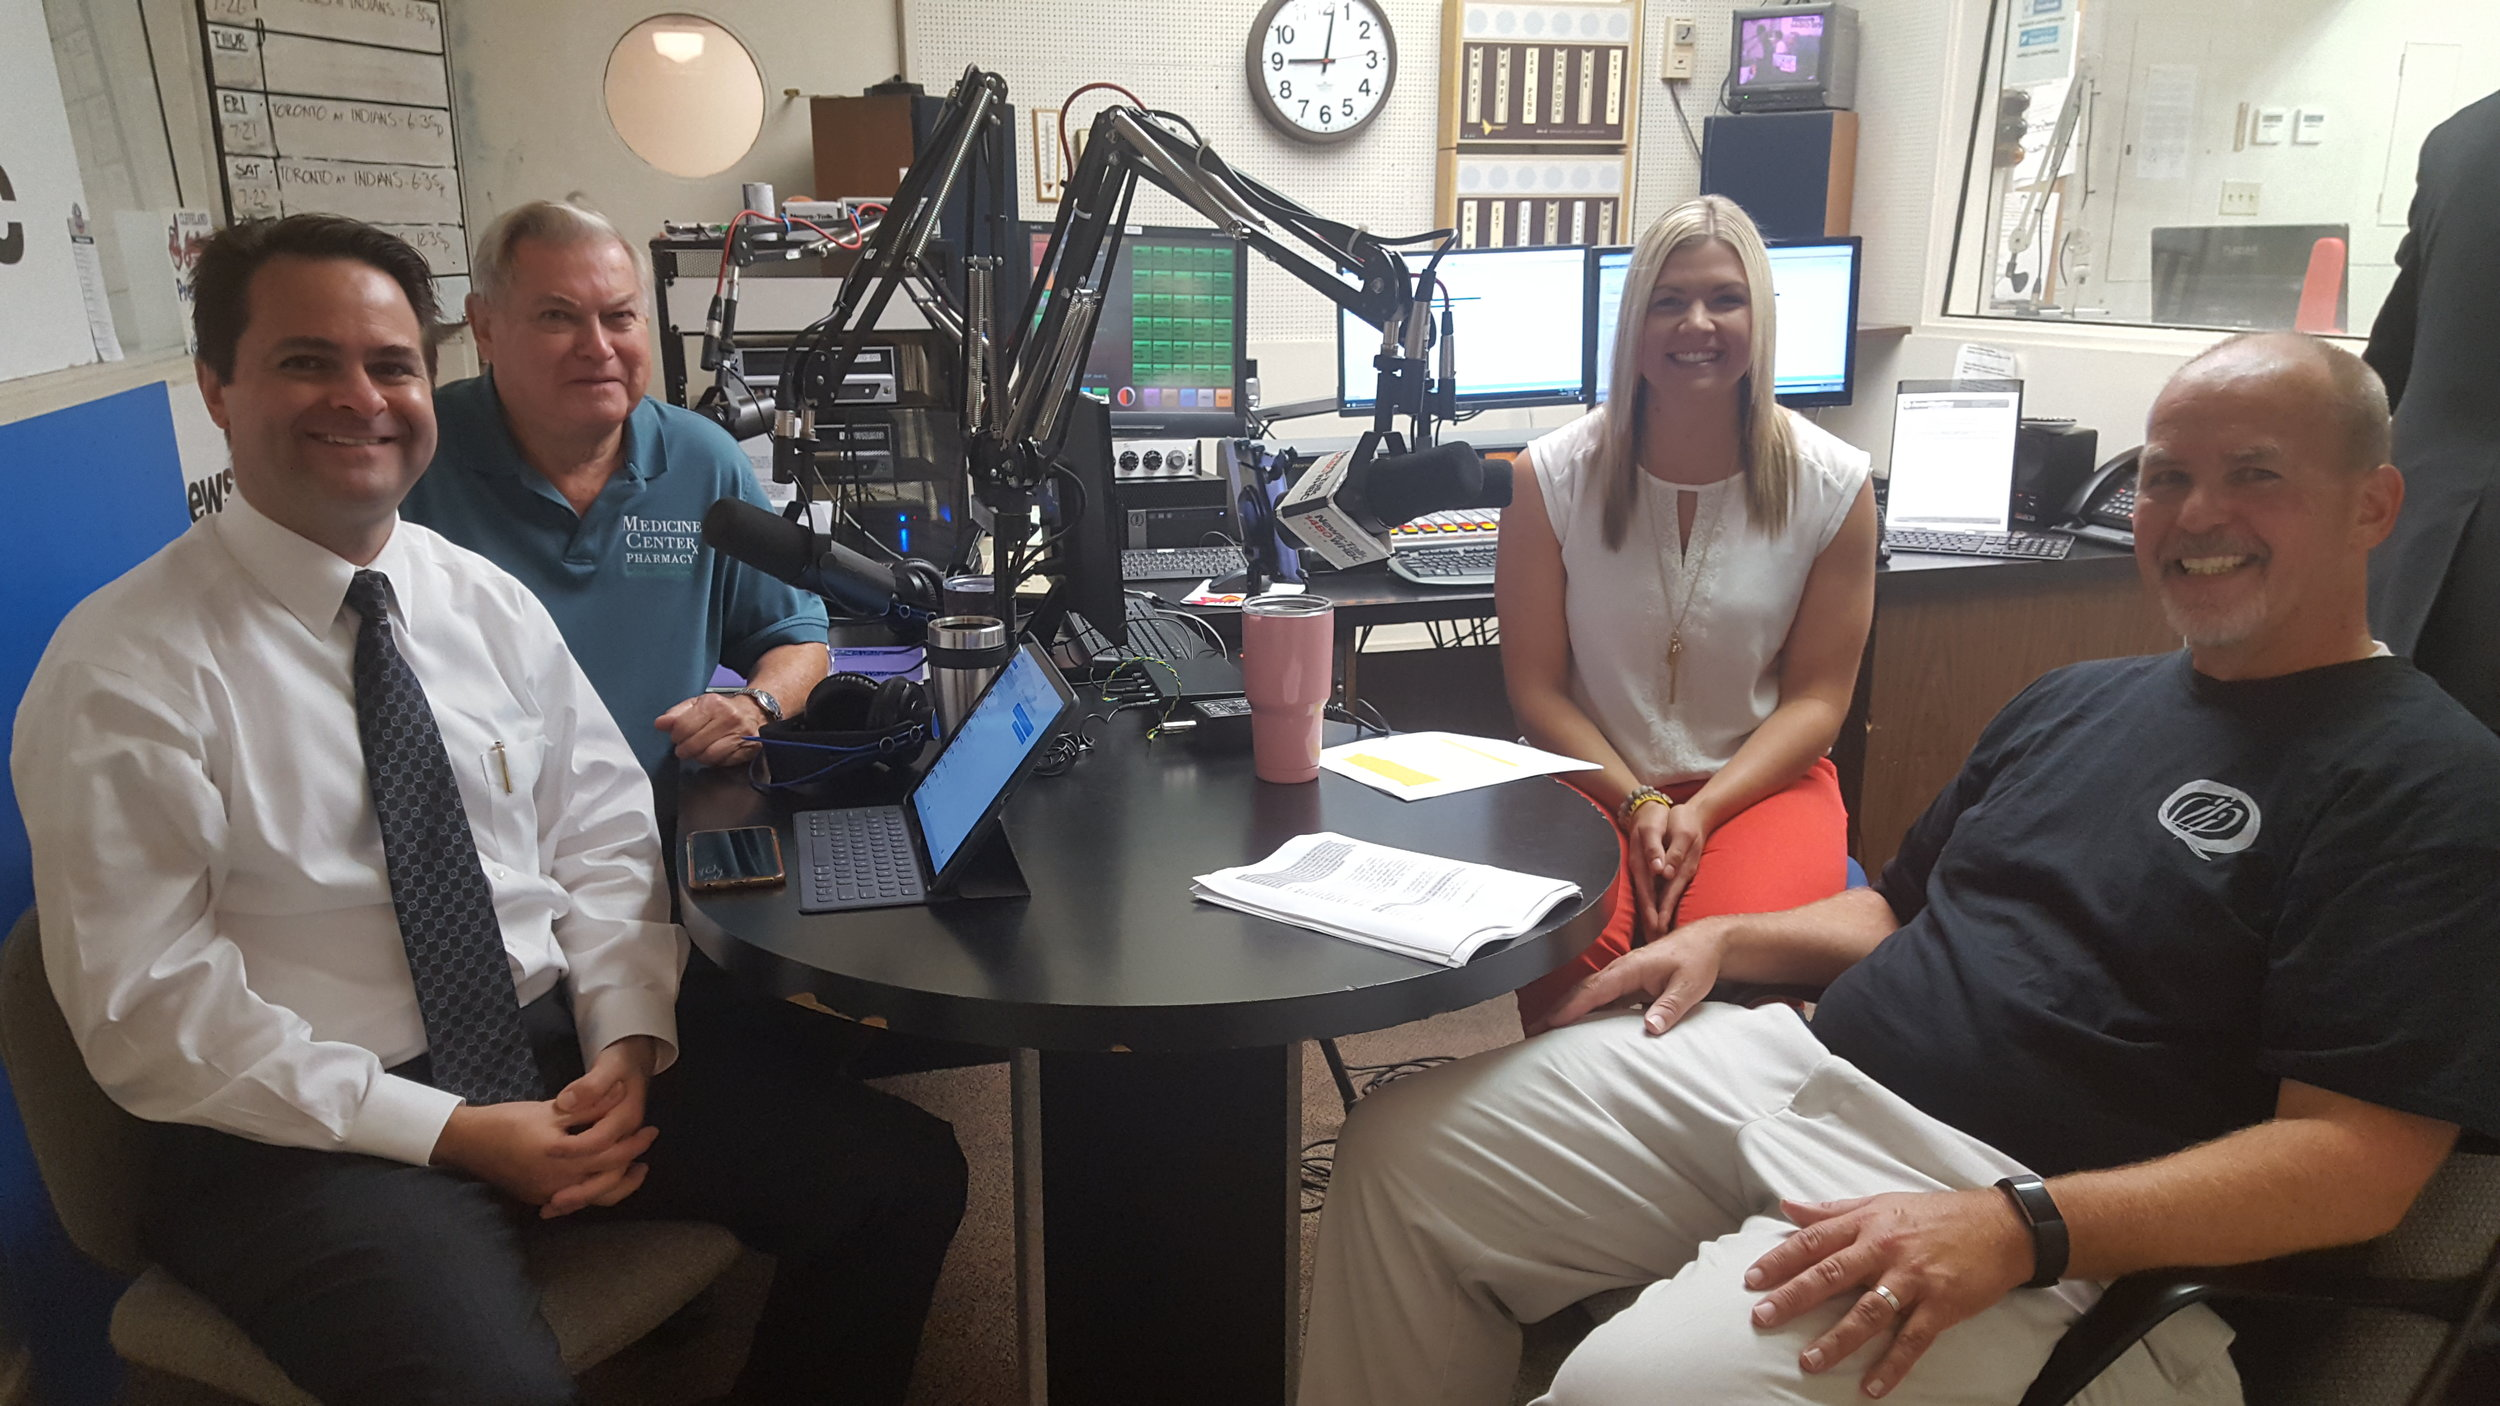 CommQuest's President and CEO Keith Rochadel and Fund & Business Development Coordinator Sara Stone discuss the opiate and heroin epidemic